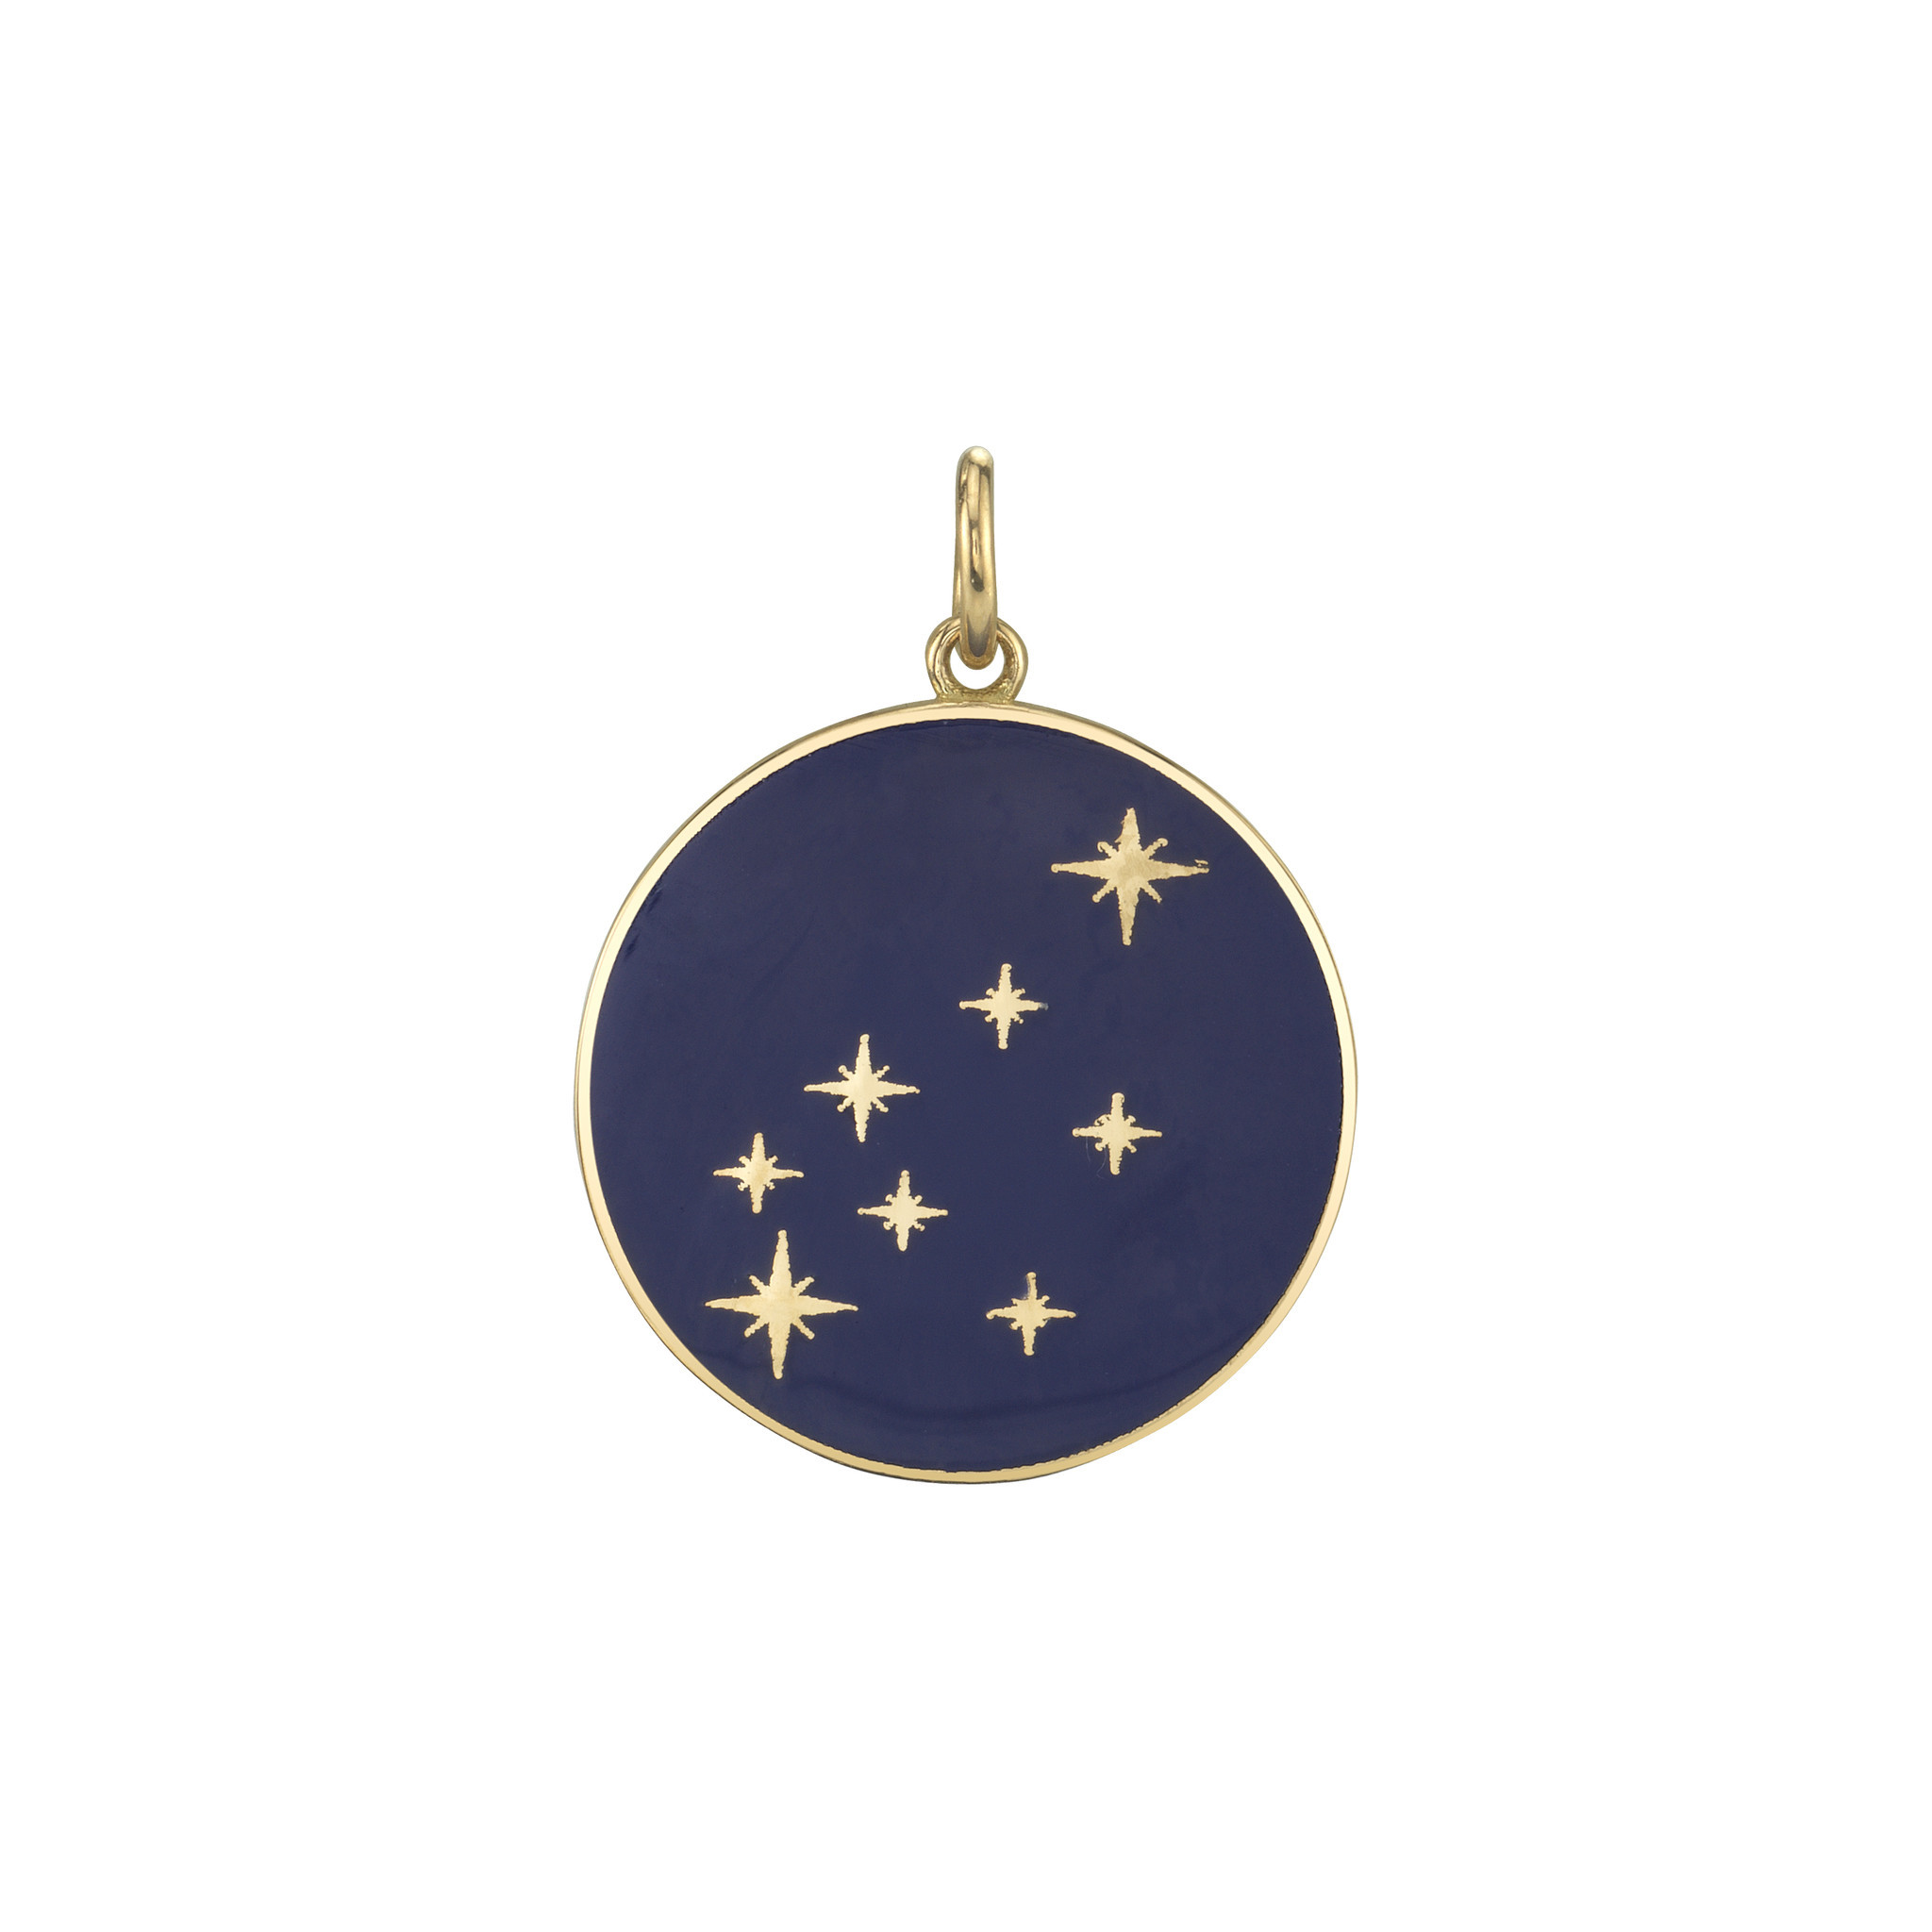 Bare Collection's Constellation Aquarius Diamond Enamel Pendant.